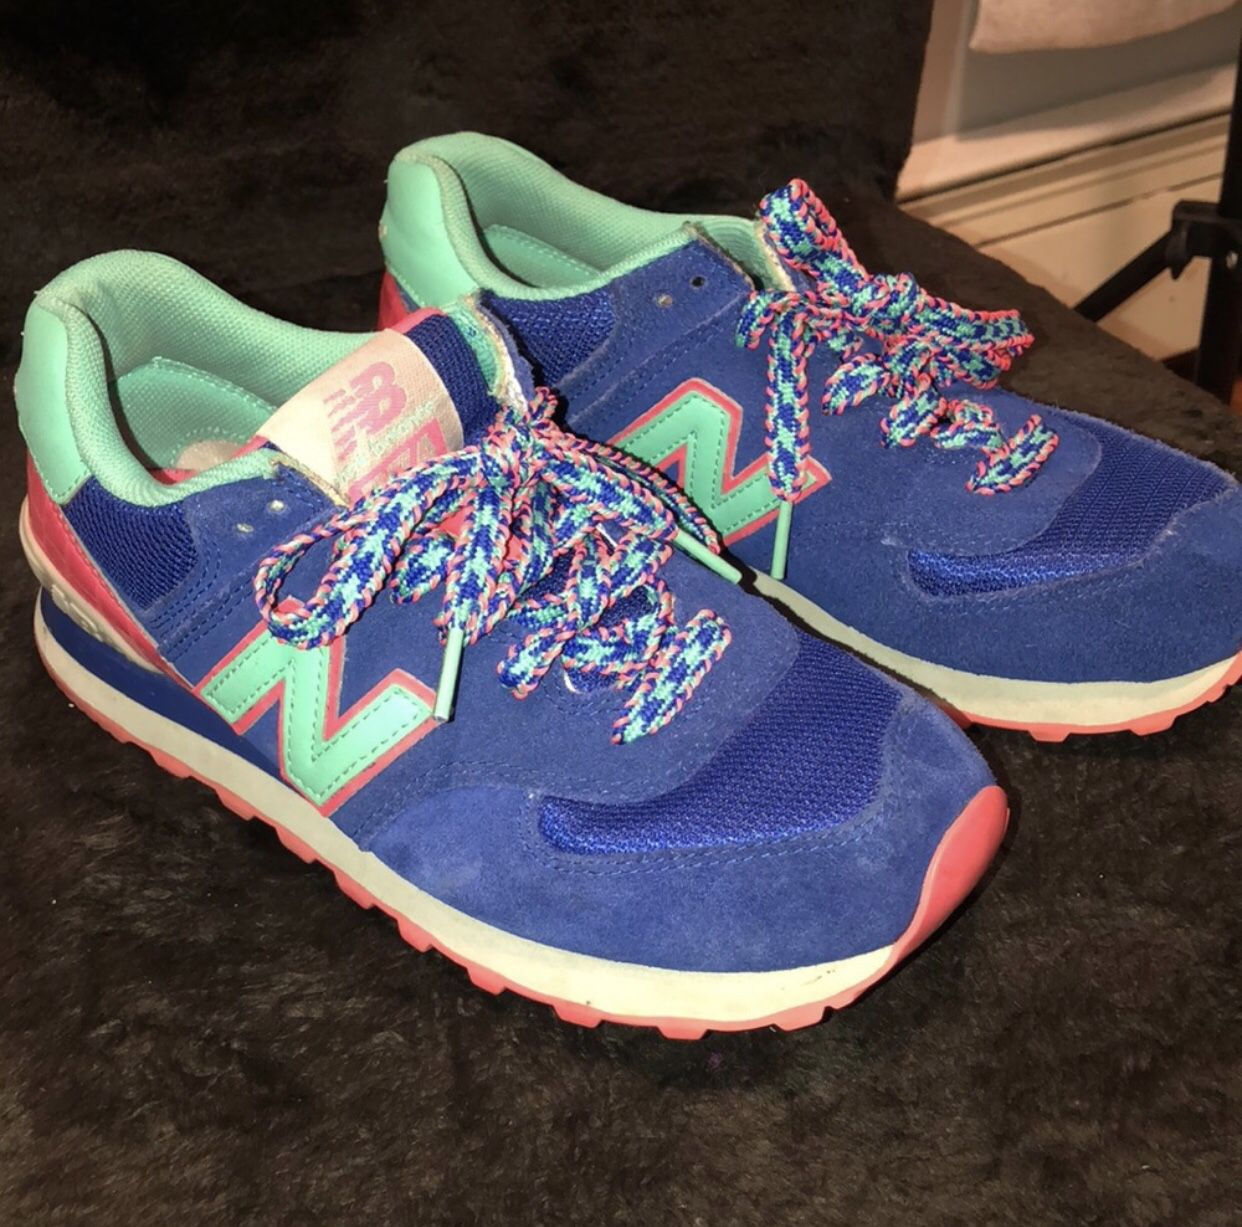 New Balance Color Block Sneakers